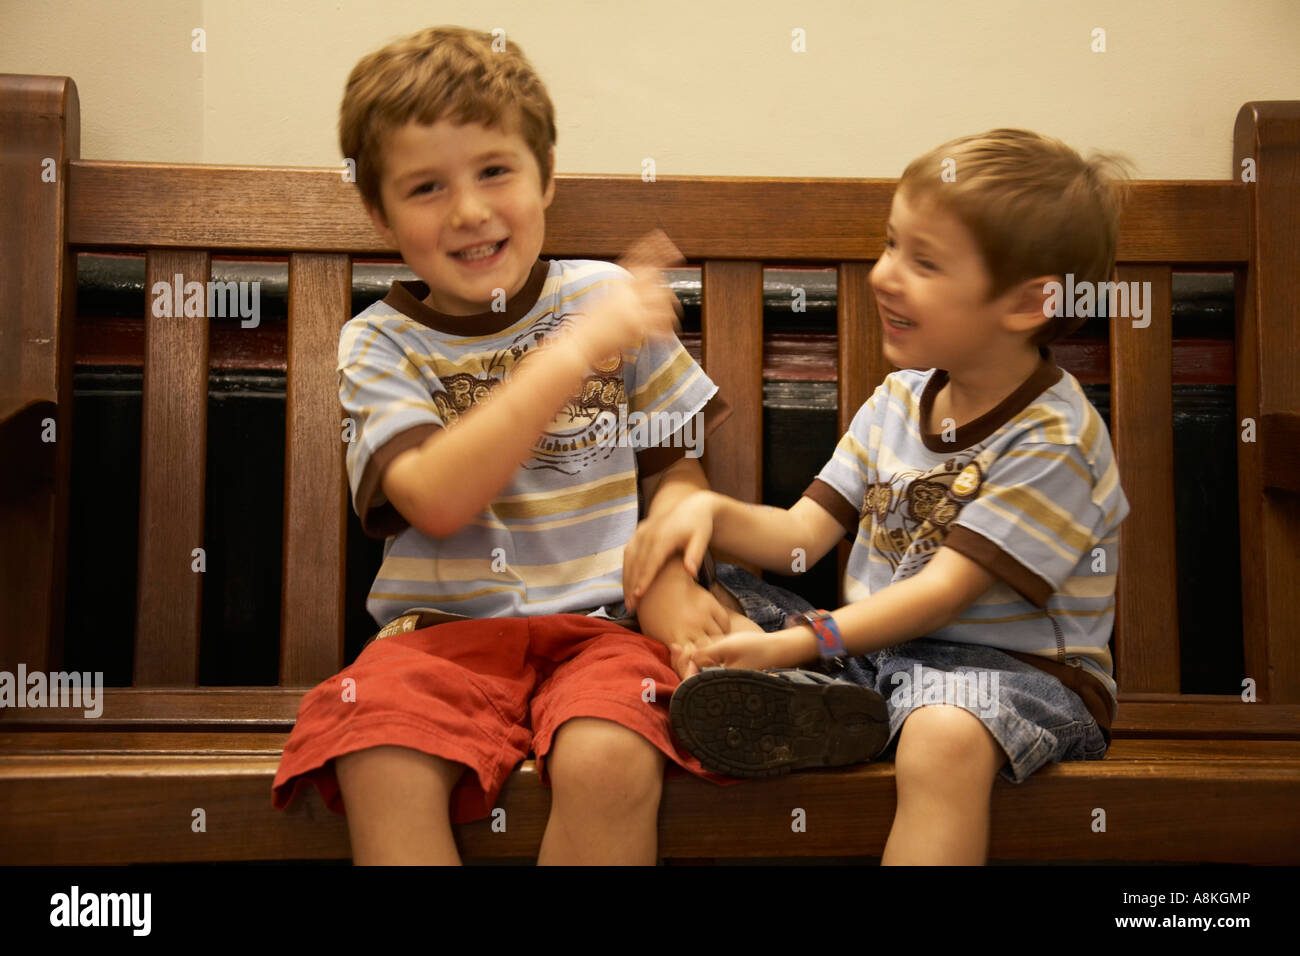 Two young boys children brothers wearing shorts and T shirts sitting on a bench playing fighting laughing Stock Photo